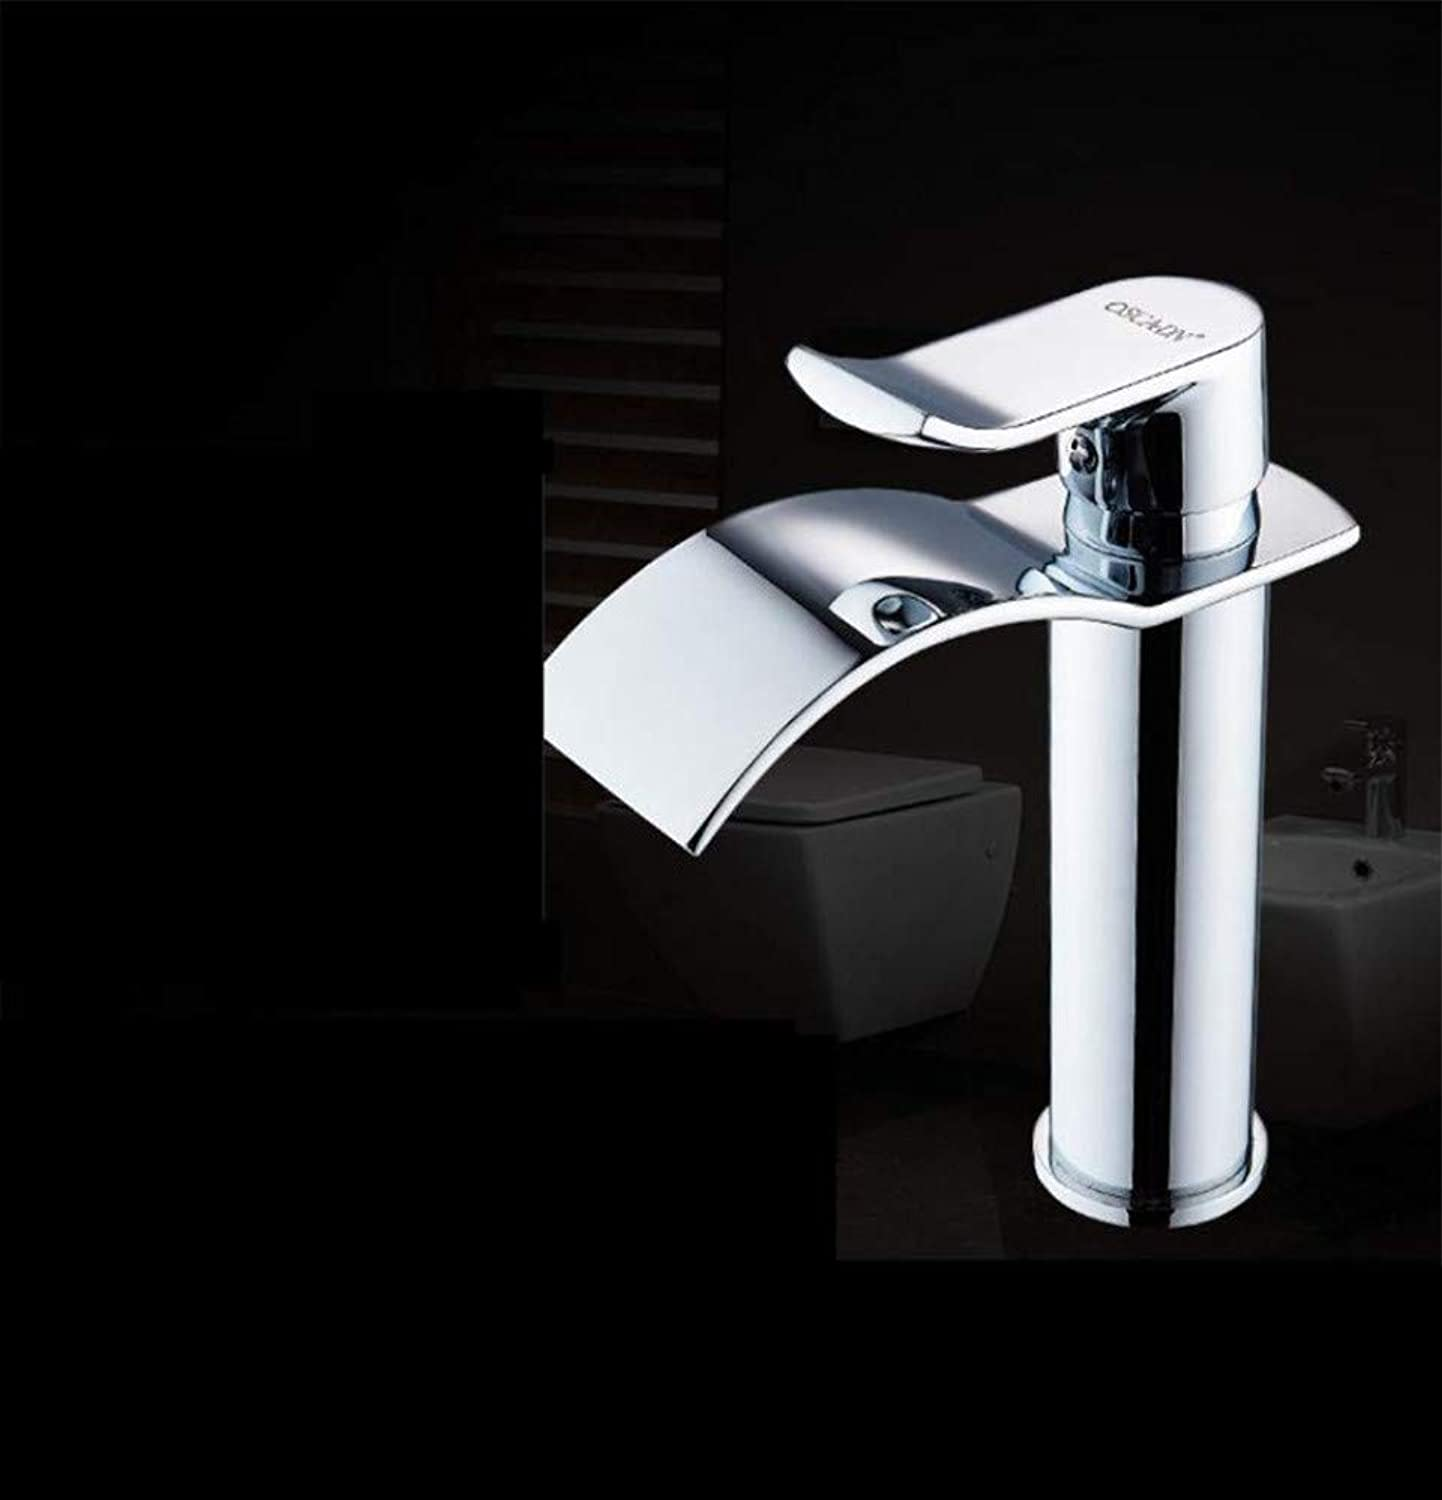 360° redating Faucet Retro Faucetbasin European gold Faucet Copper Single Hole Black Waterfall Basin Faucet Heightening